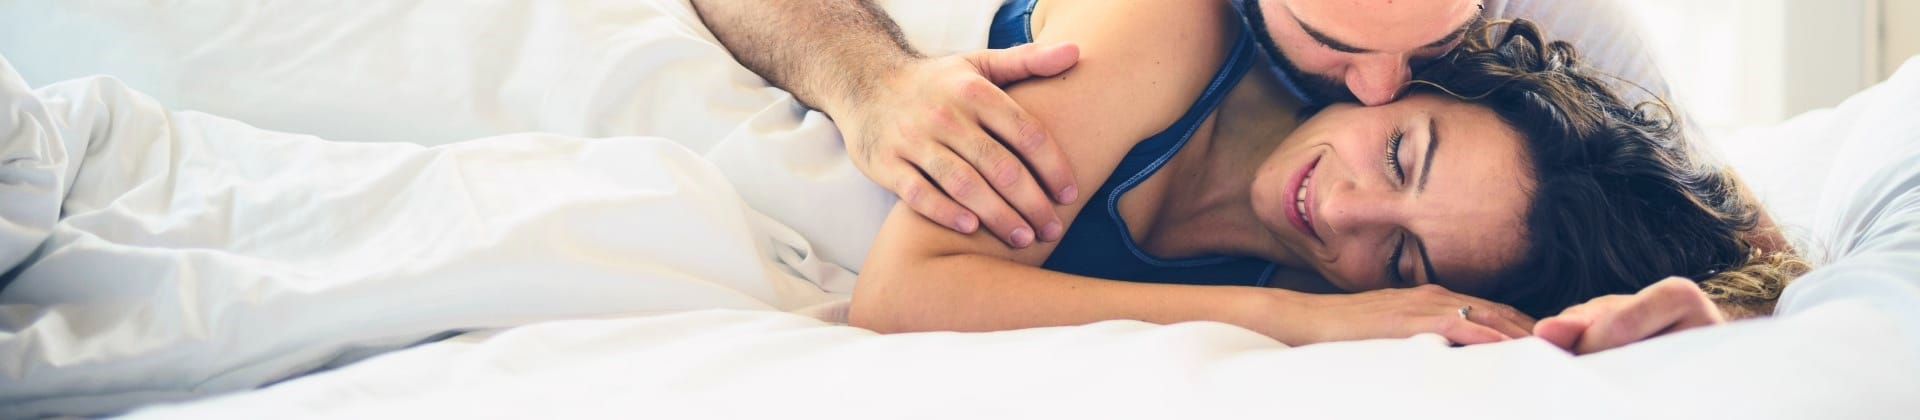 Best Mattresses for Sex Reviewed in Detail